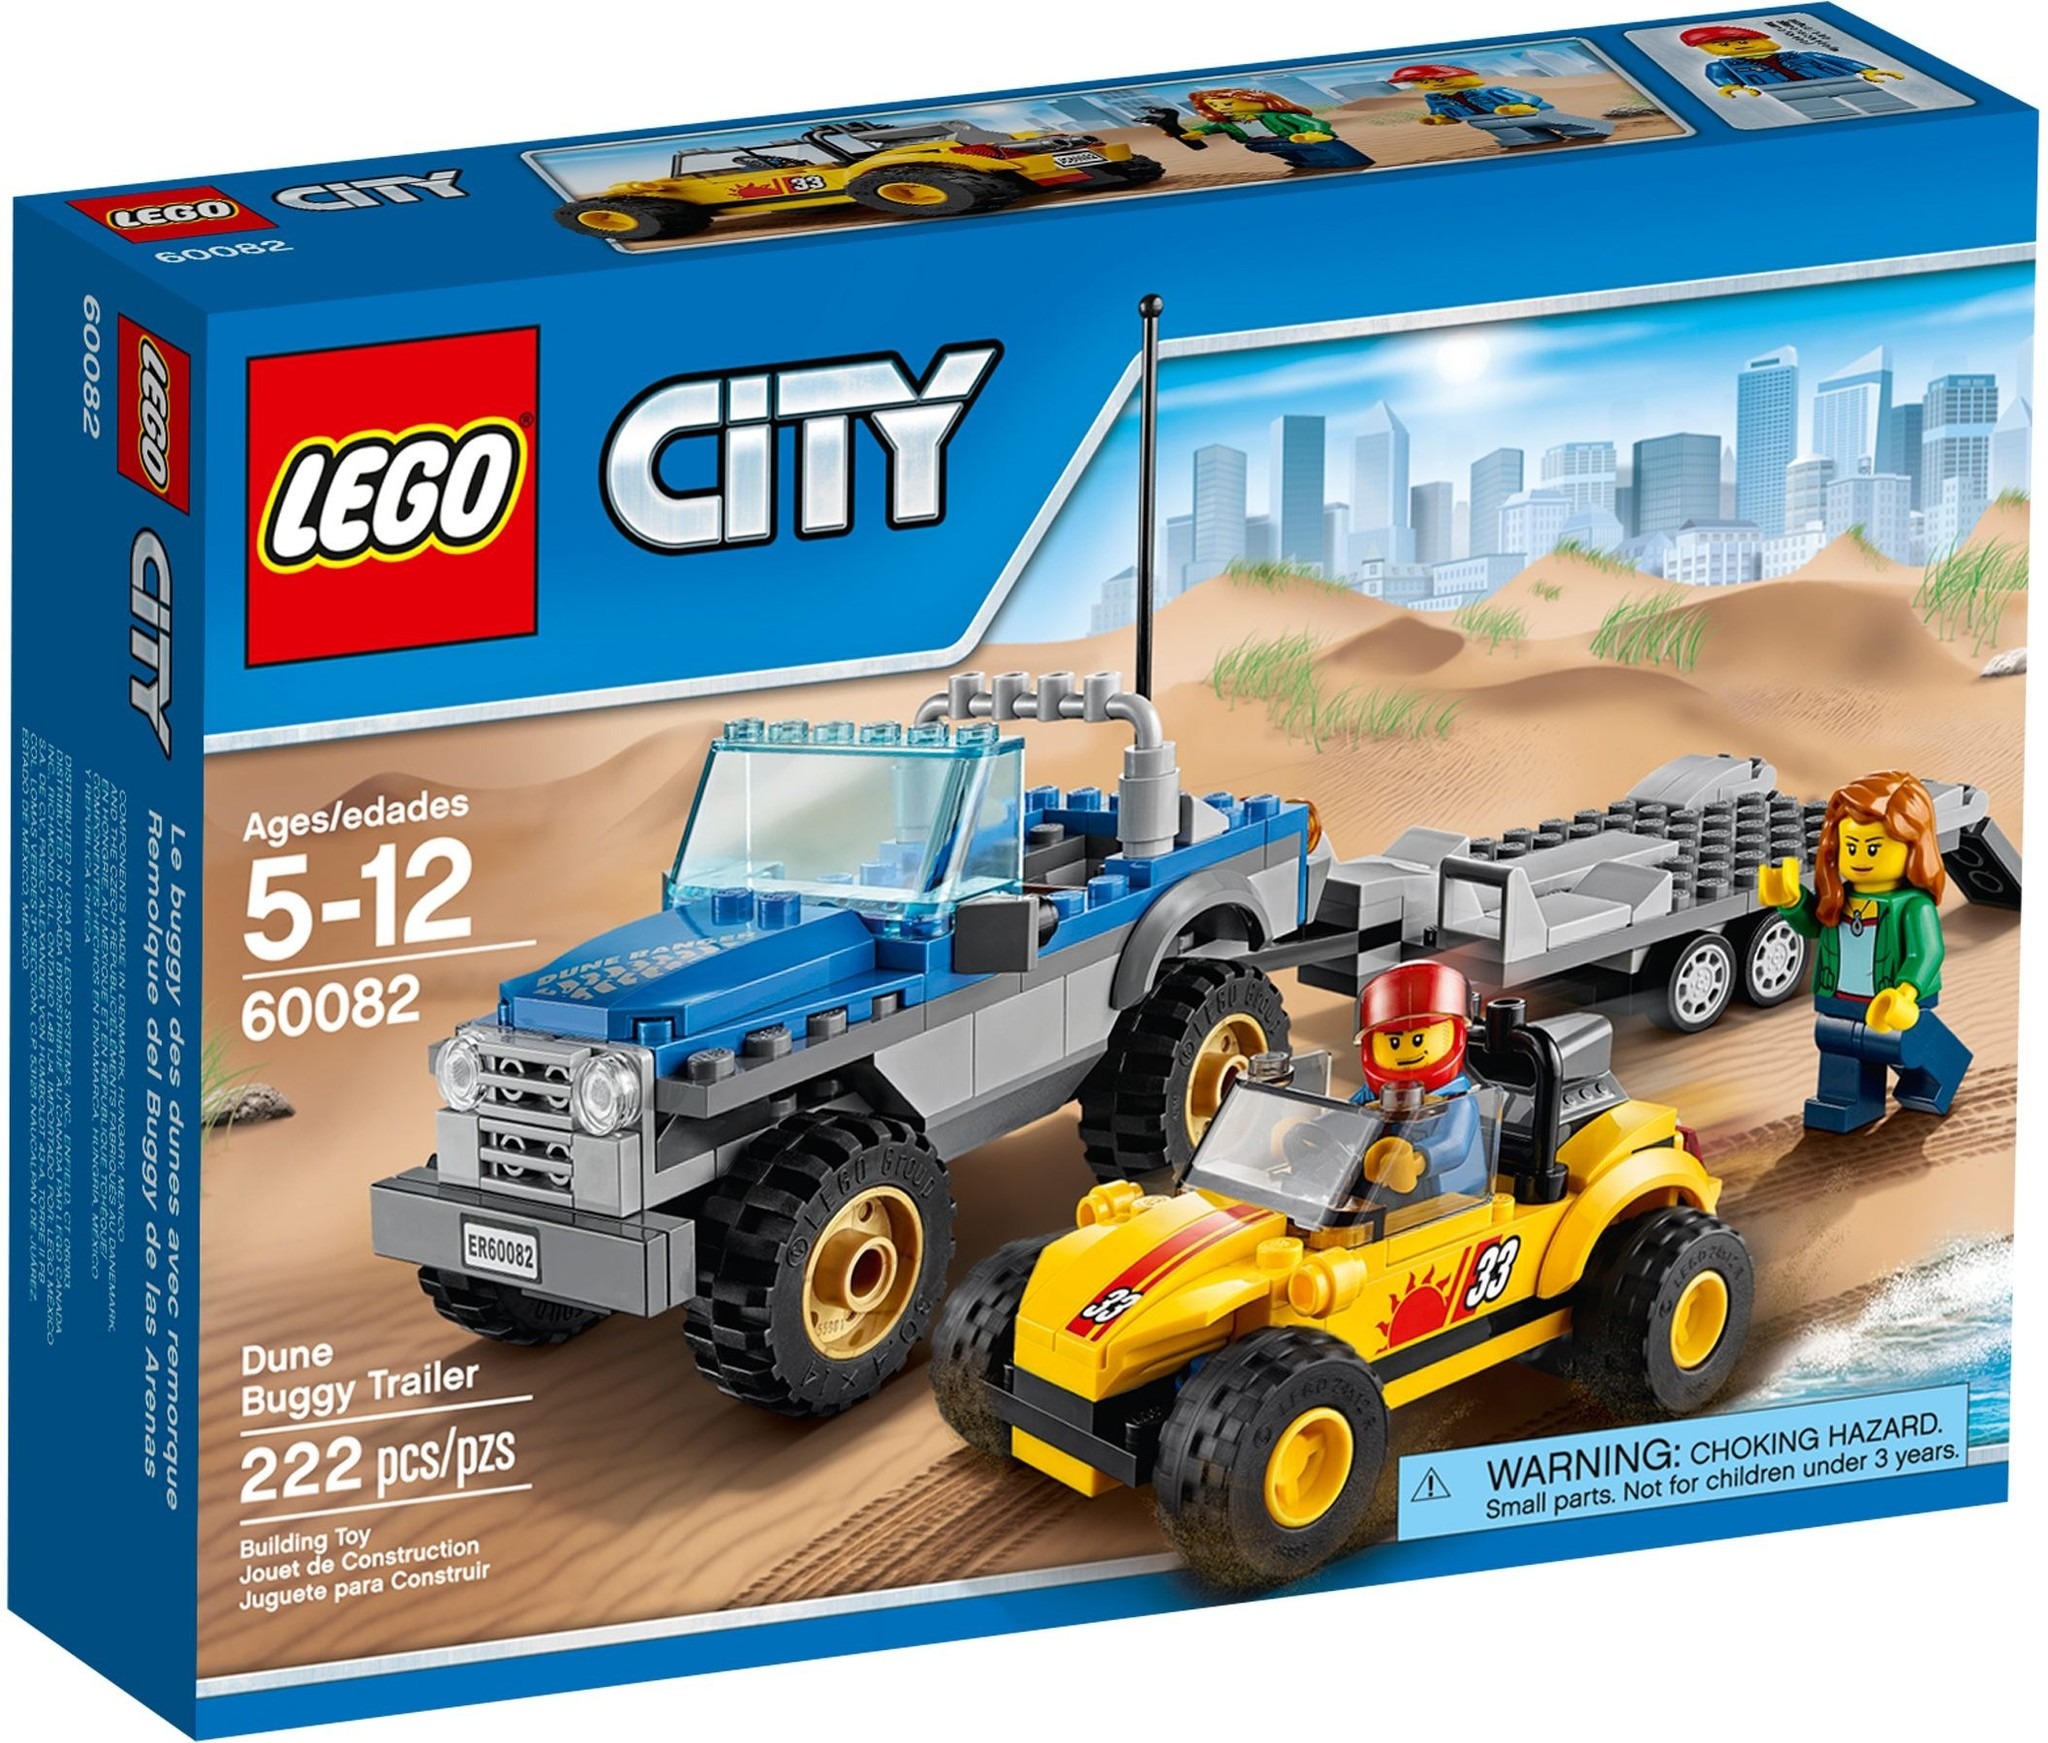 LEGO 60082 - City - Dune Buggy Trailer